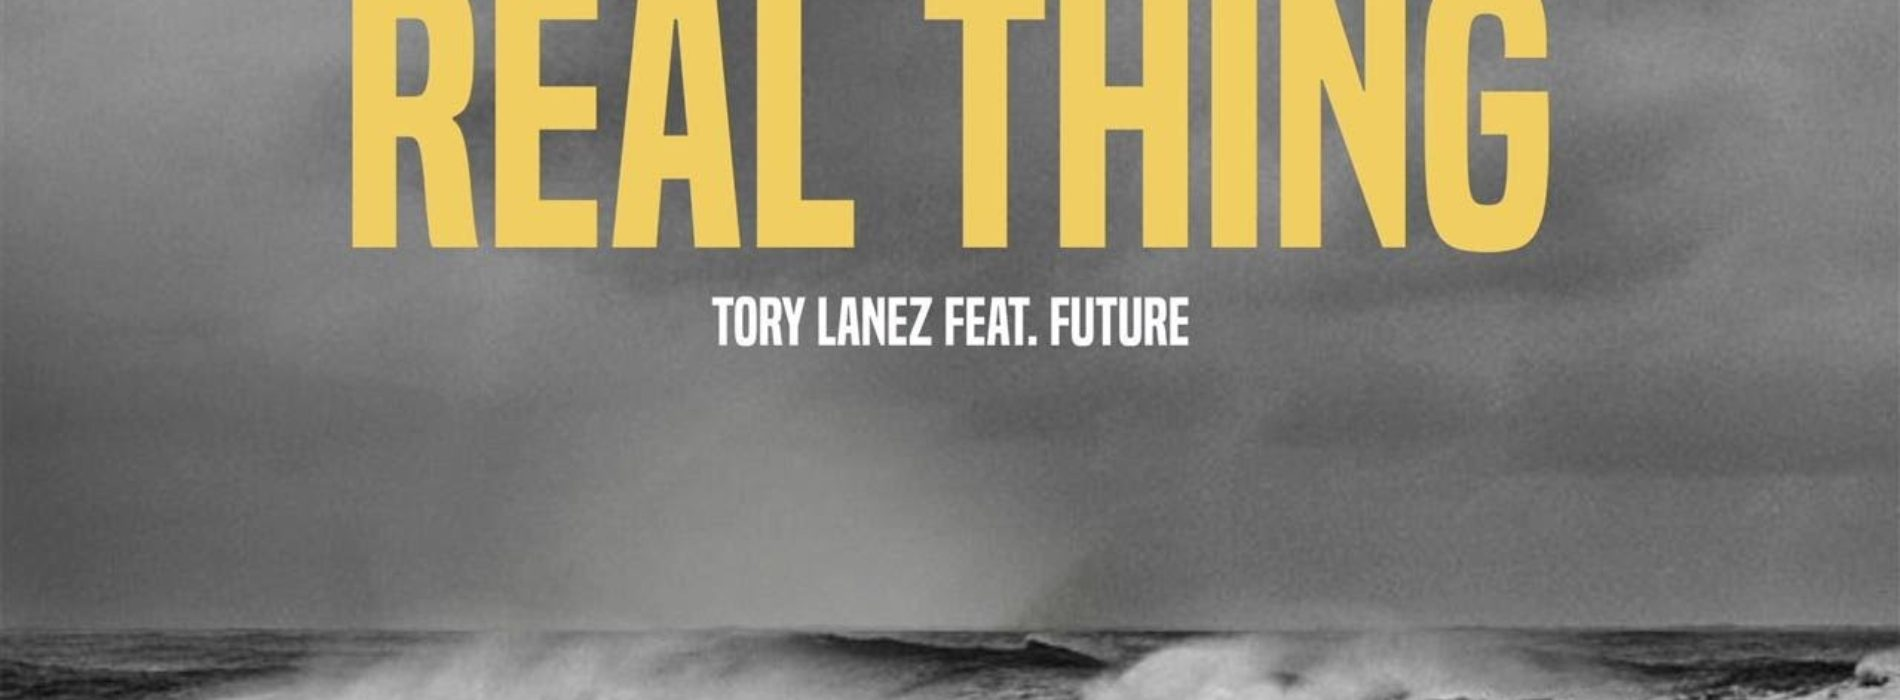 TORY LANEZ – Real Thing ft. FUTURE – Mars 2018